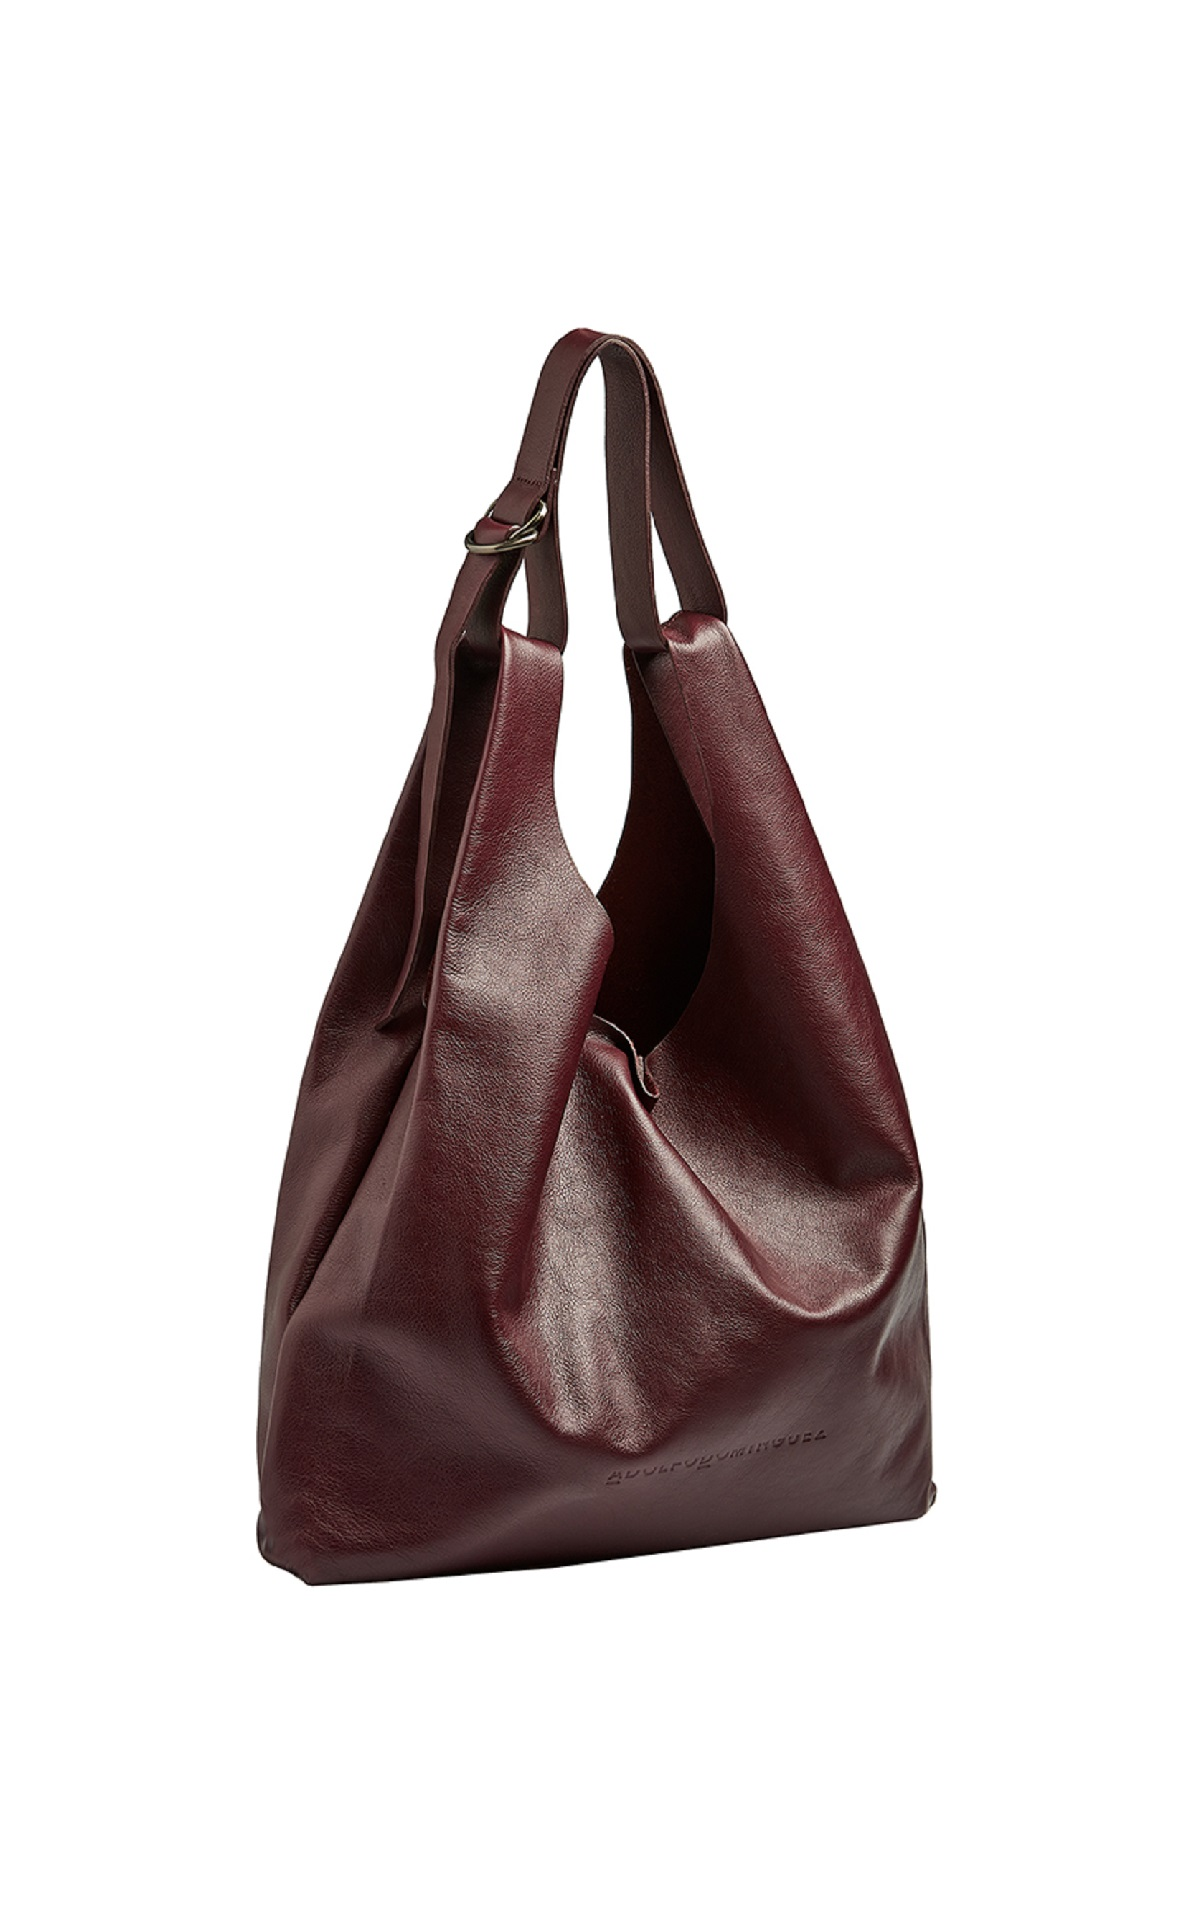 Big burgundy leather bag Adolfo Dominguez